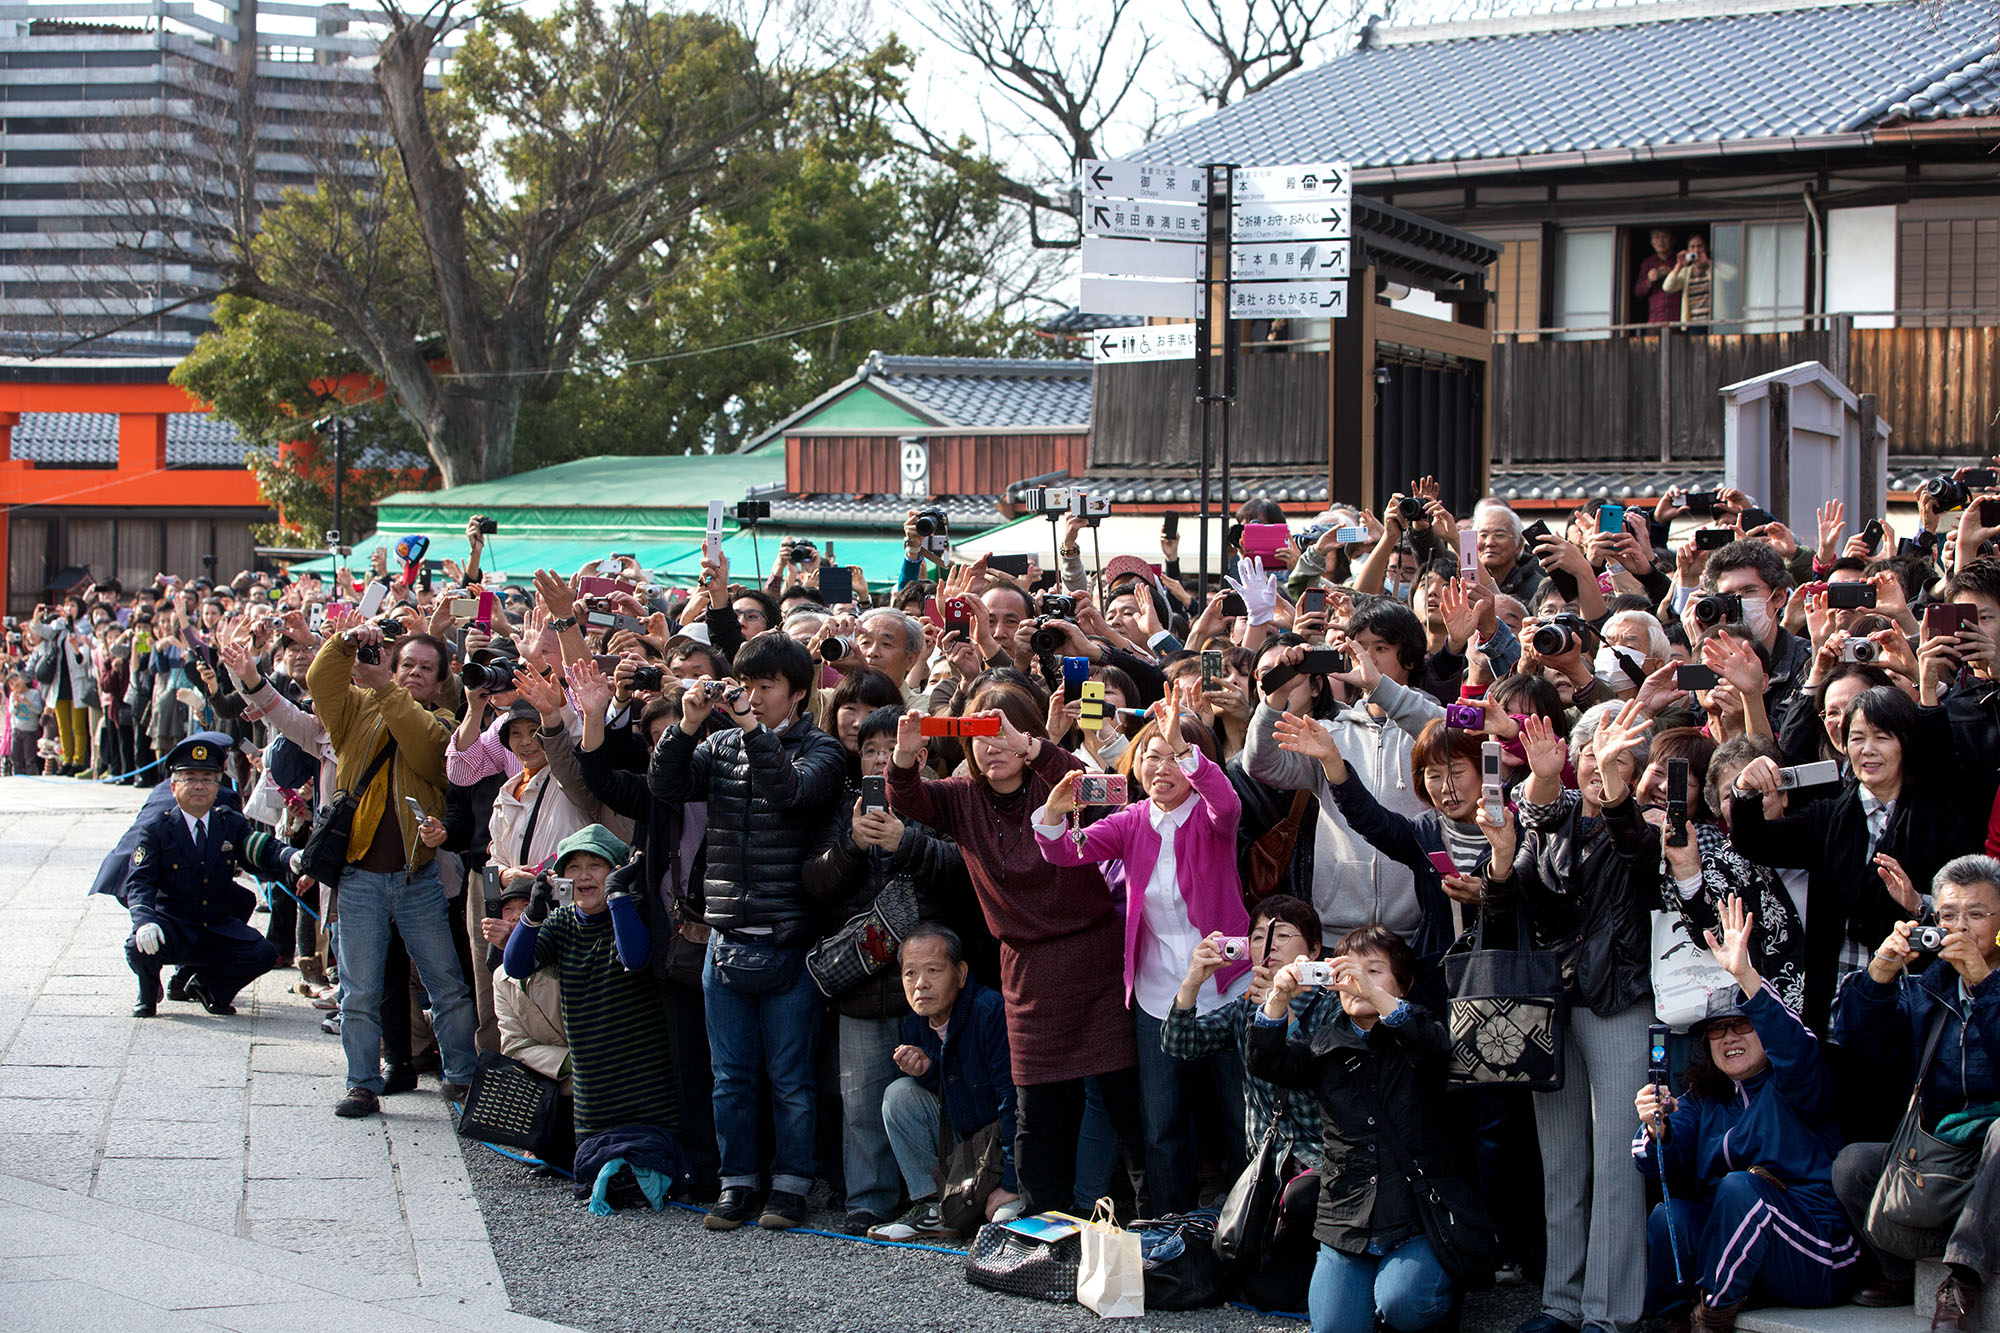 Bystanders watch as the First Lady departs the shrine. (Official White House Photo by Amanda Lucidon)